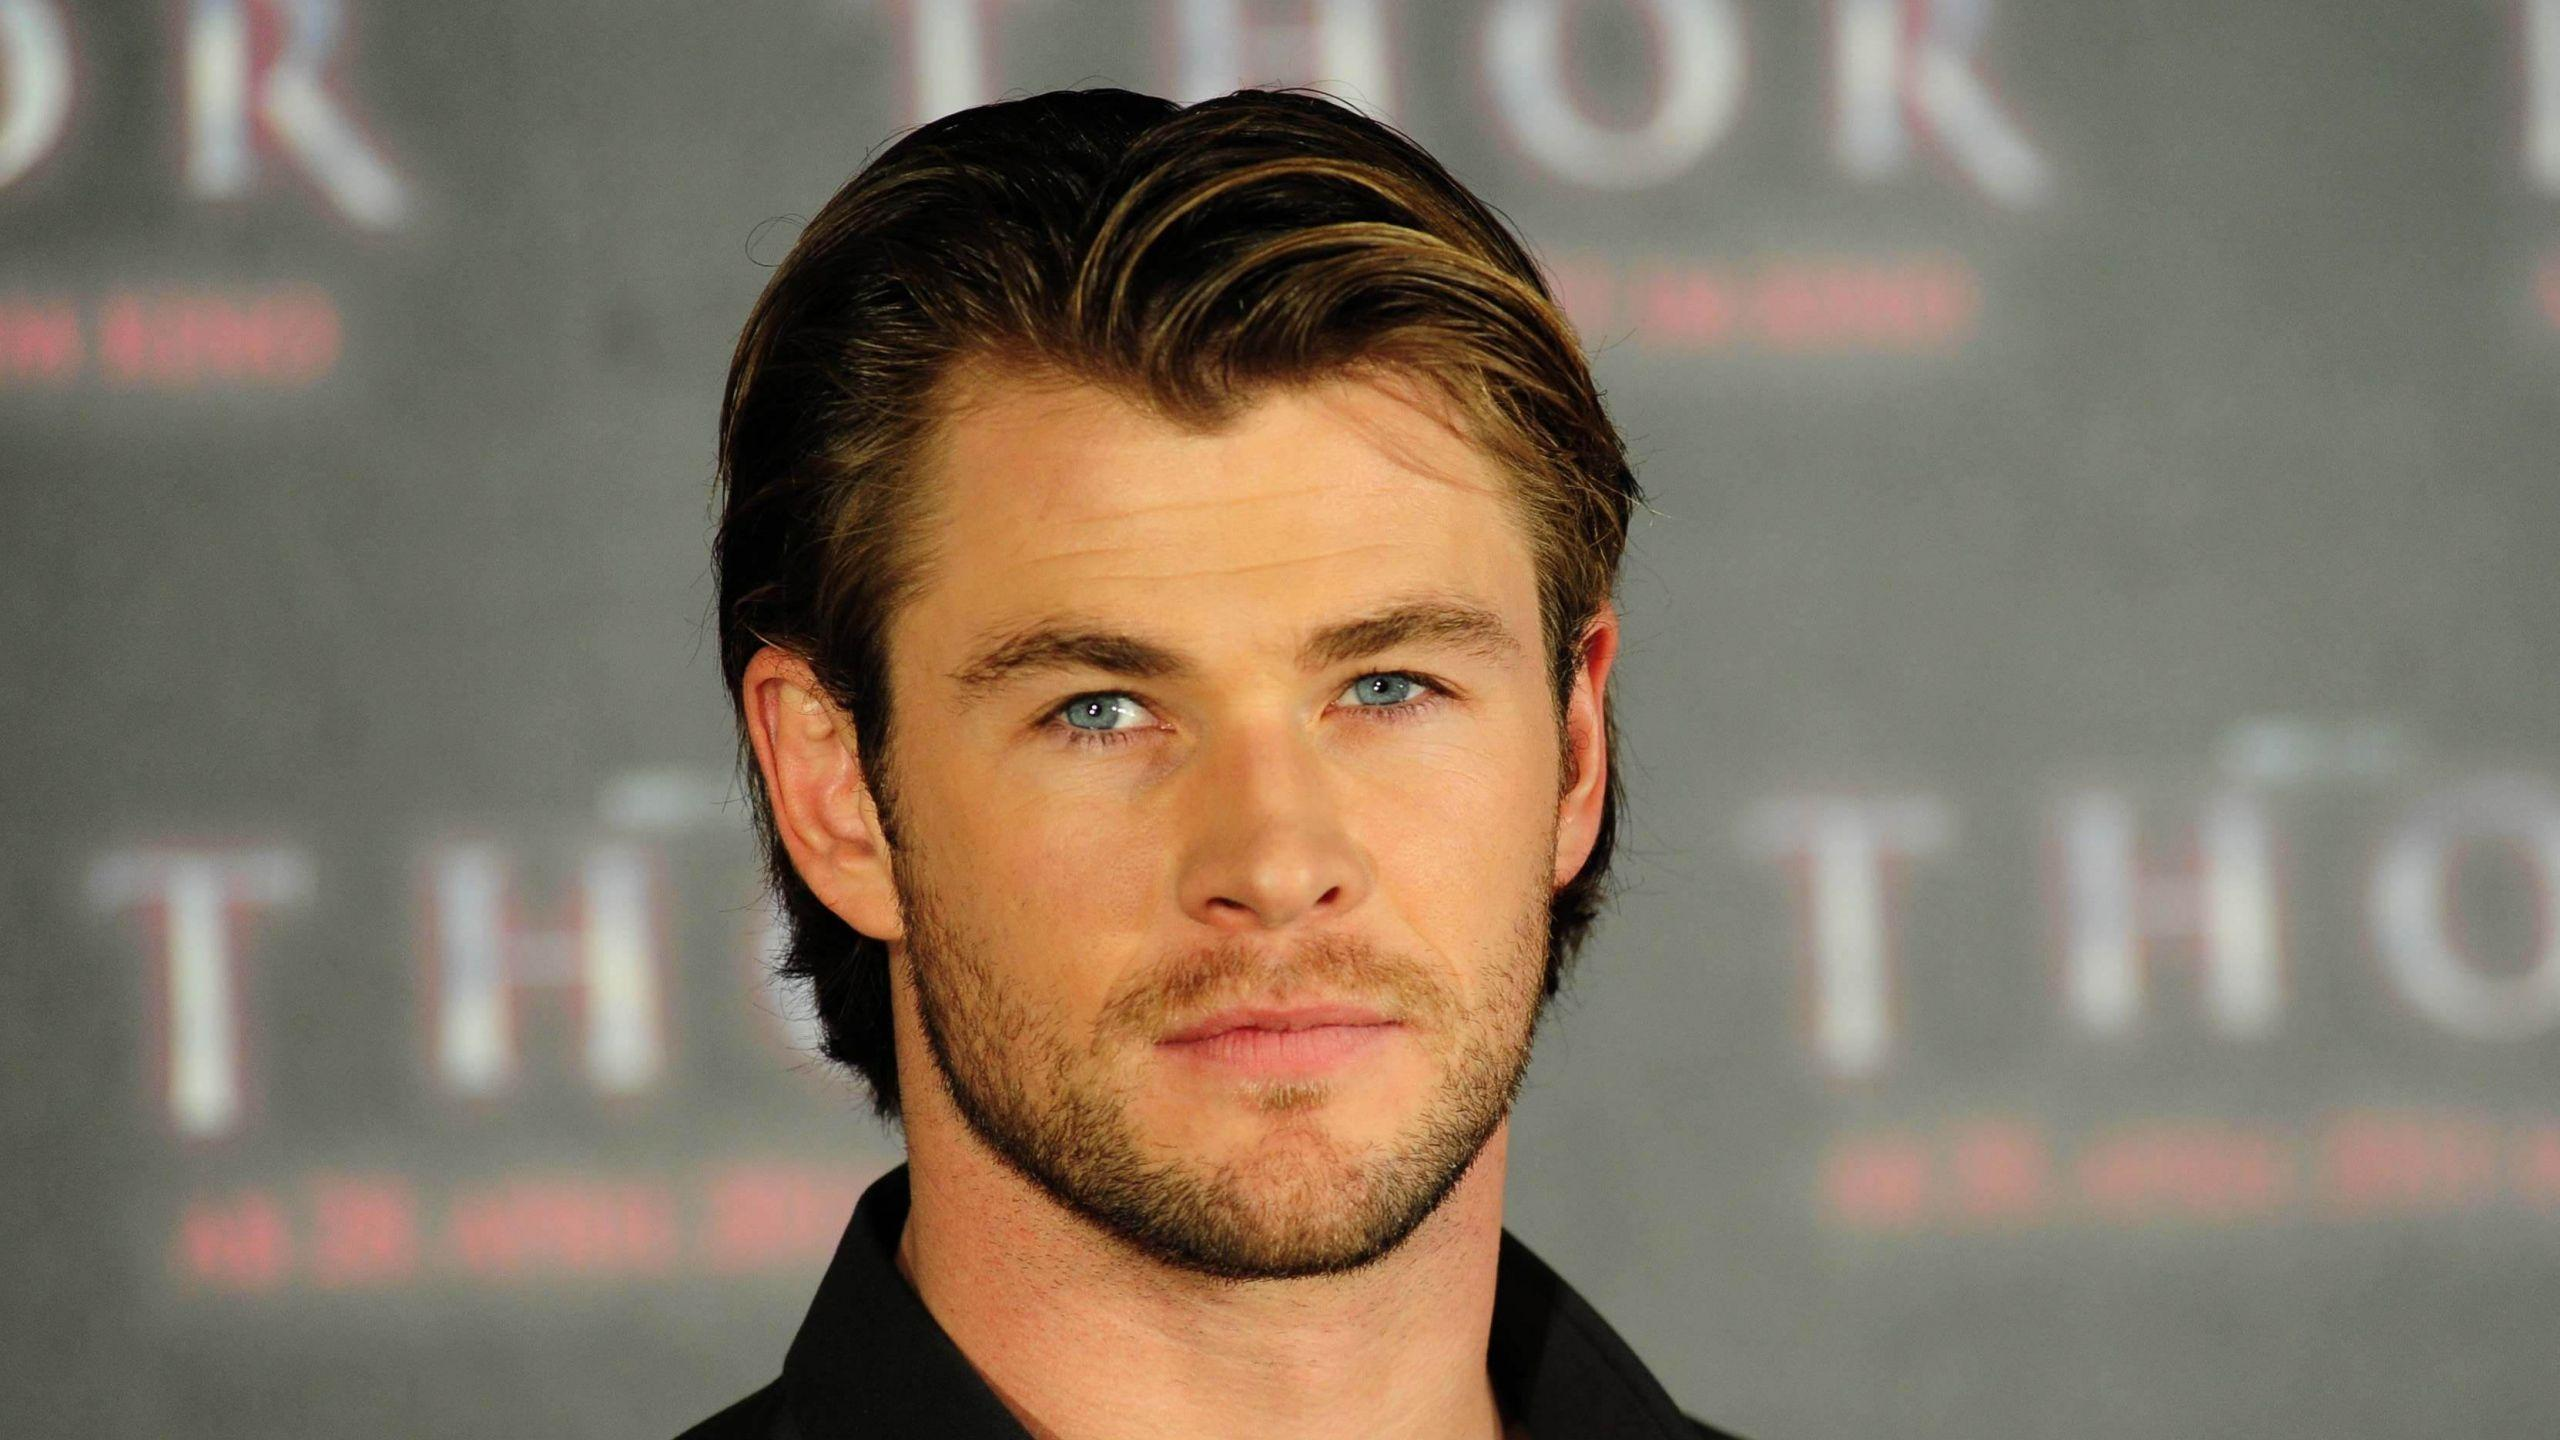 Chris Hemsworth HD Wallpapers Free Downloads